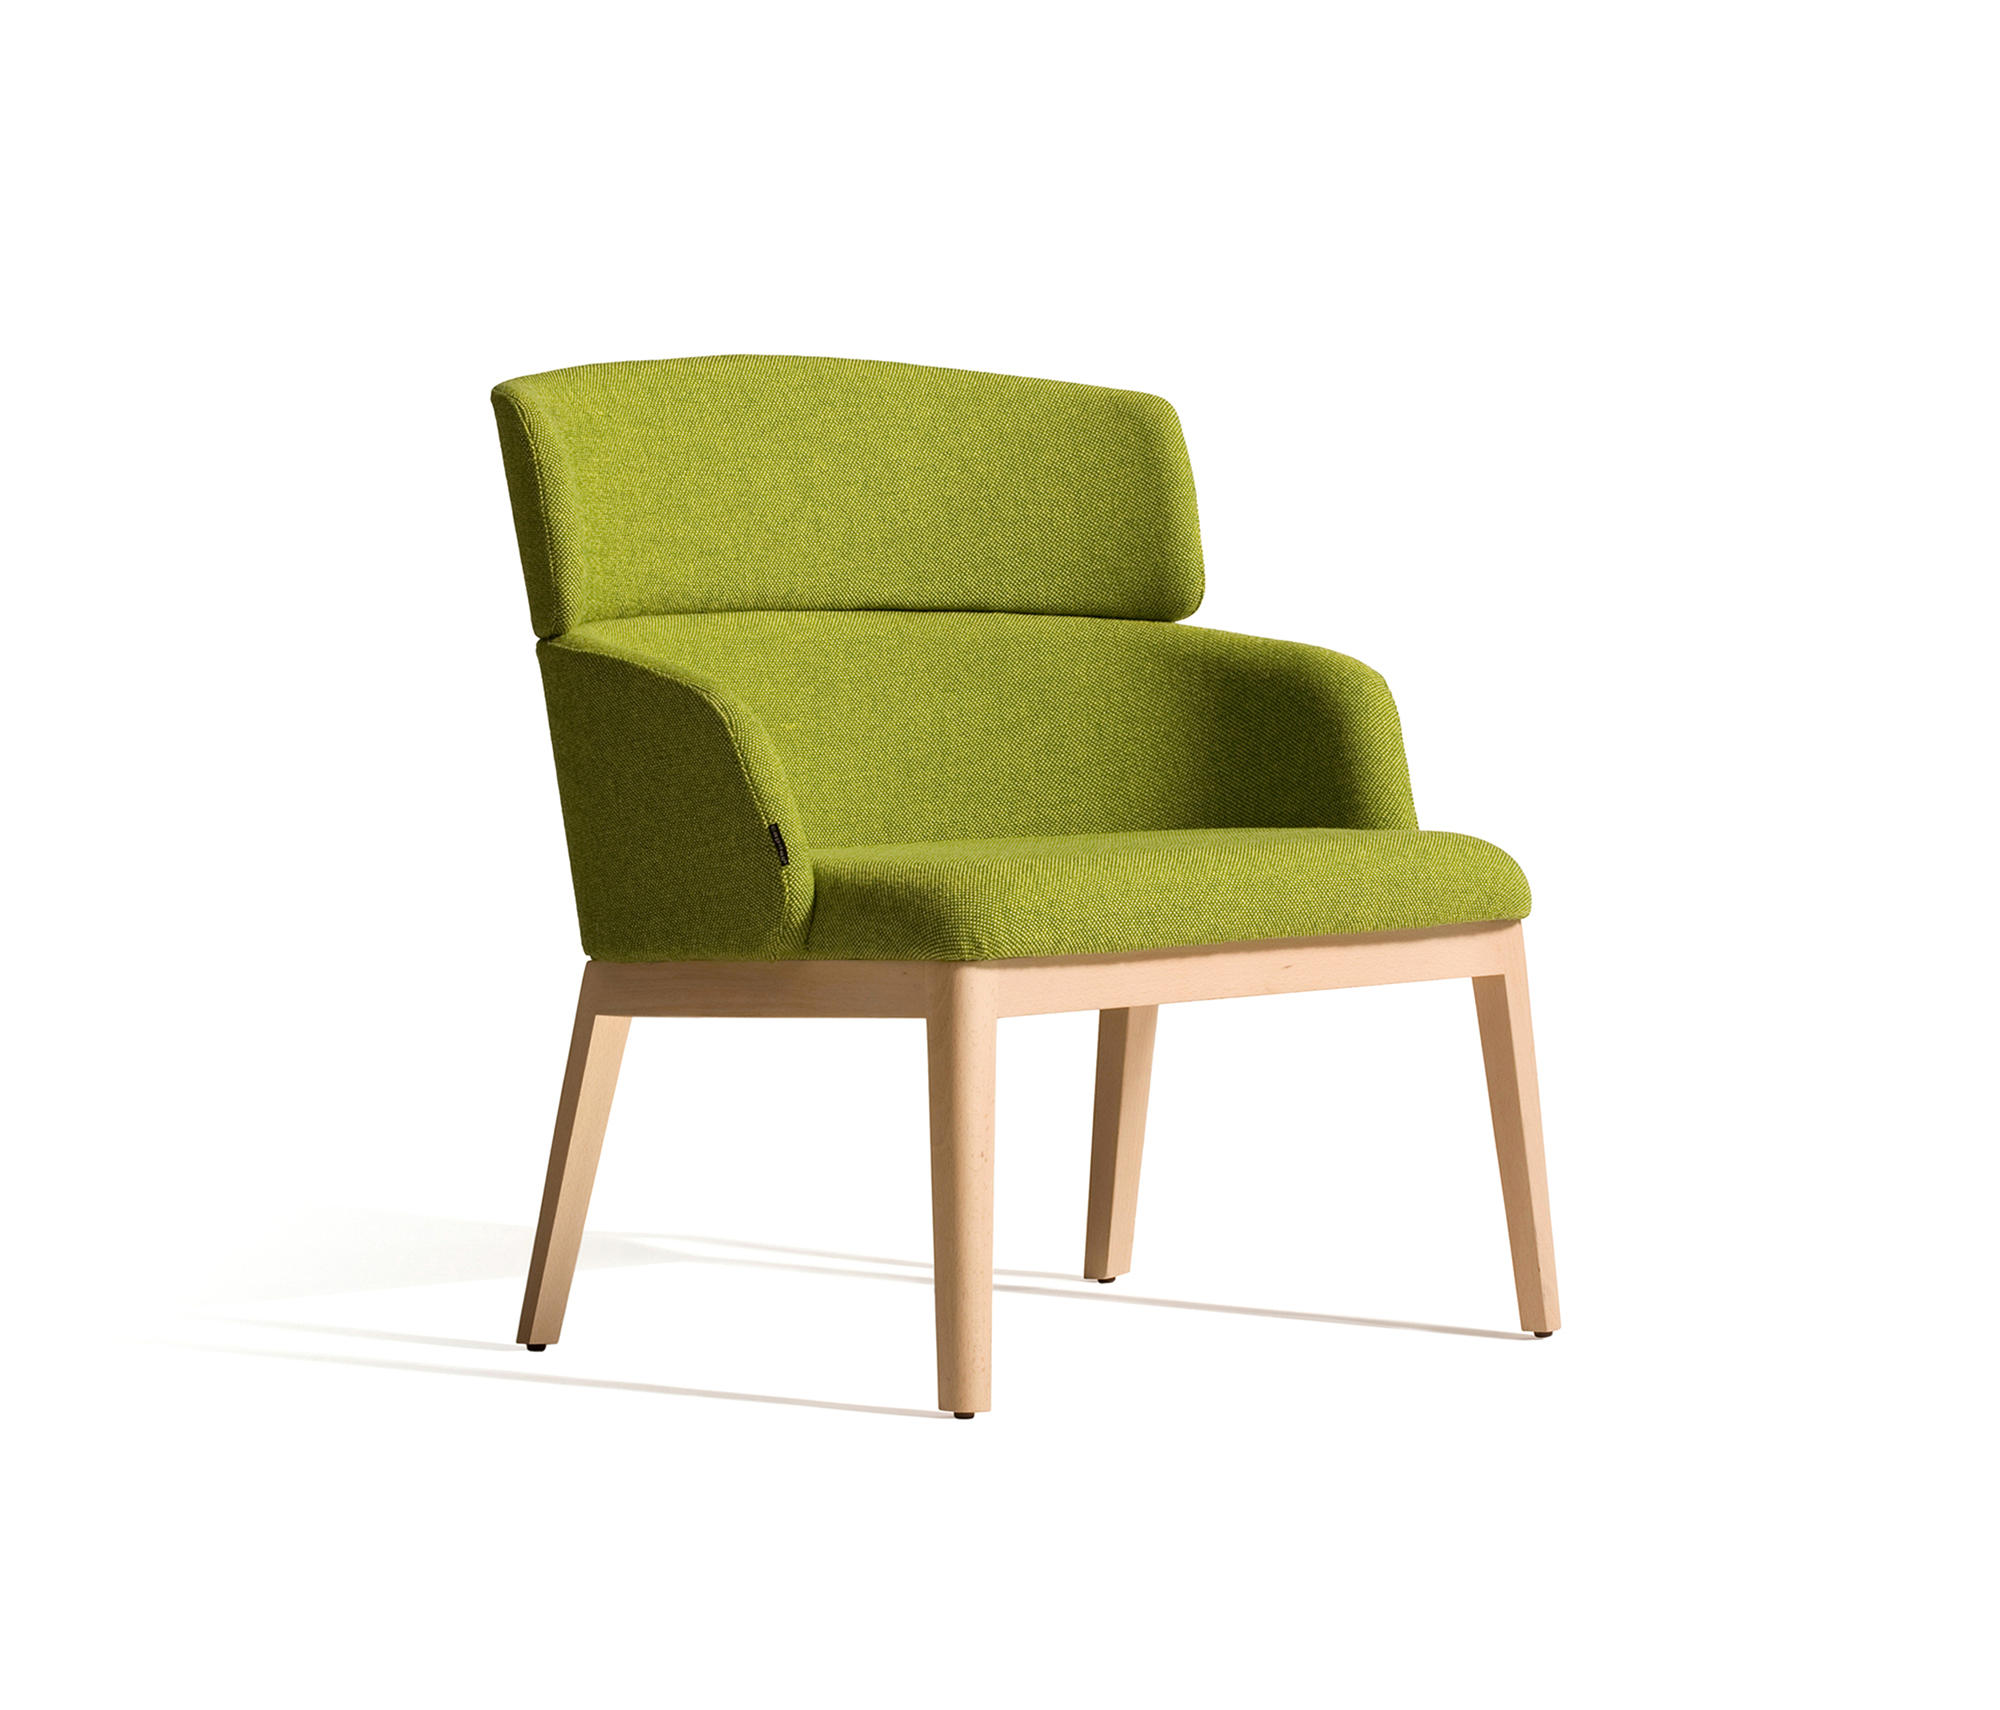 Concord 525 Um Armchairs From Capdell Architonic